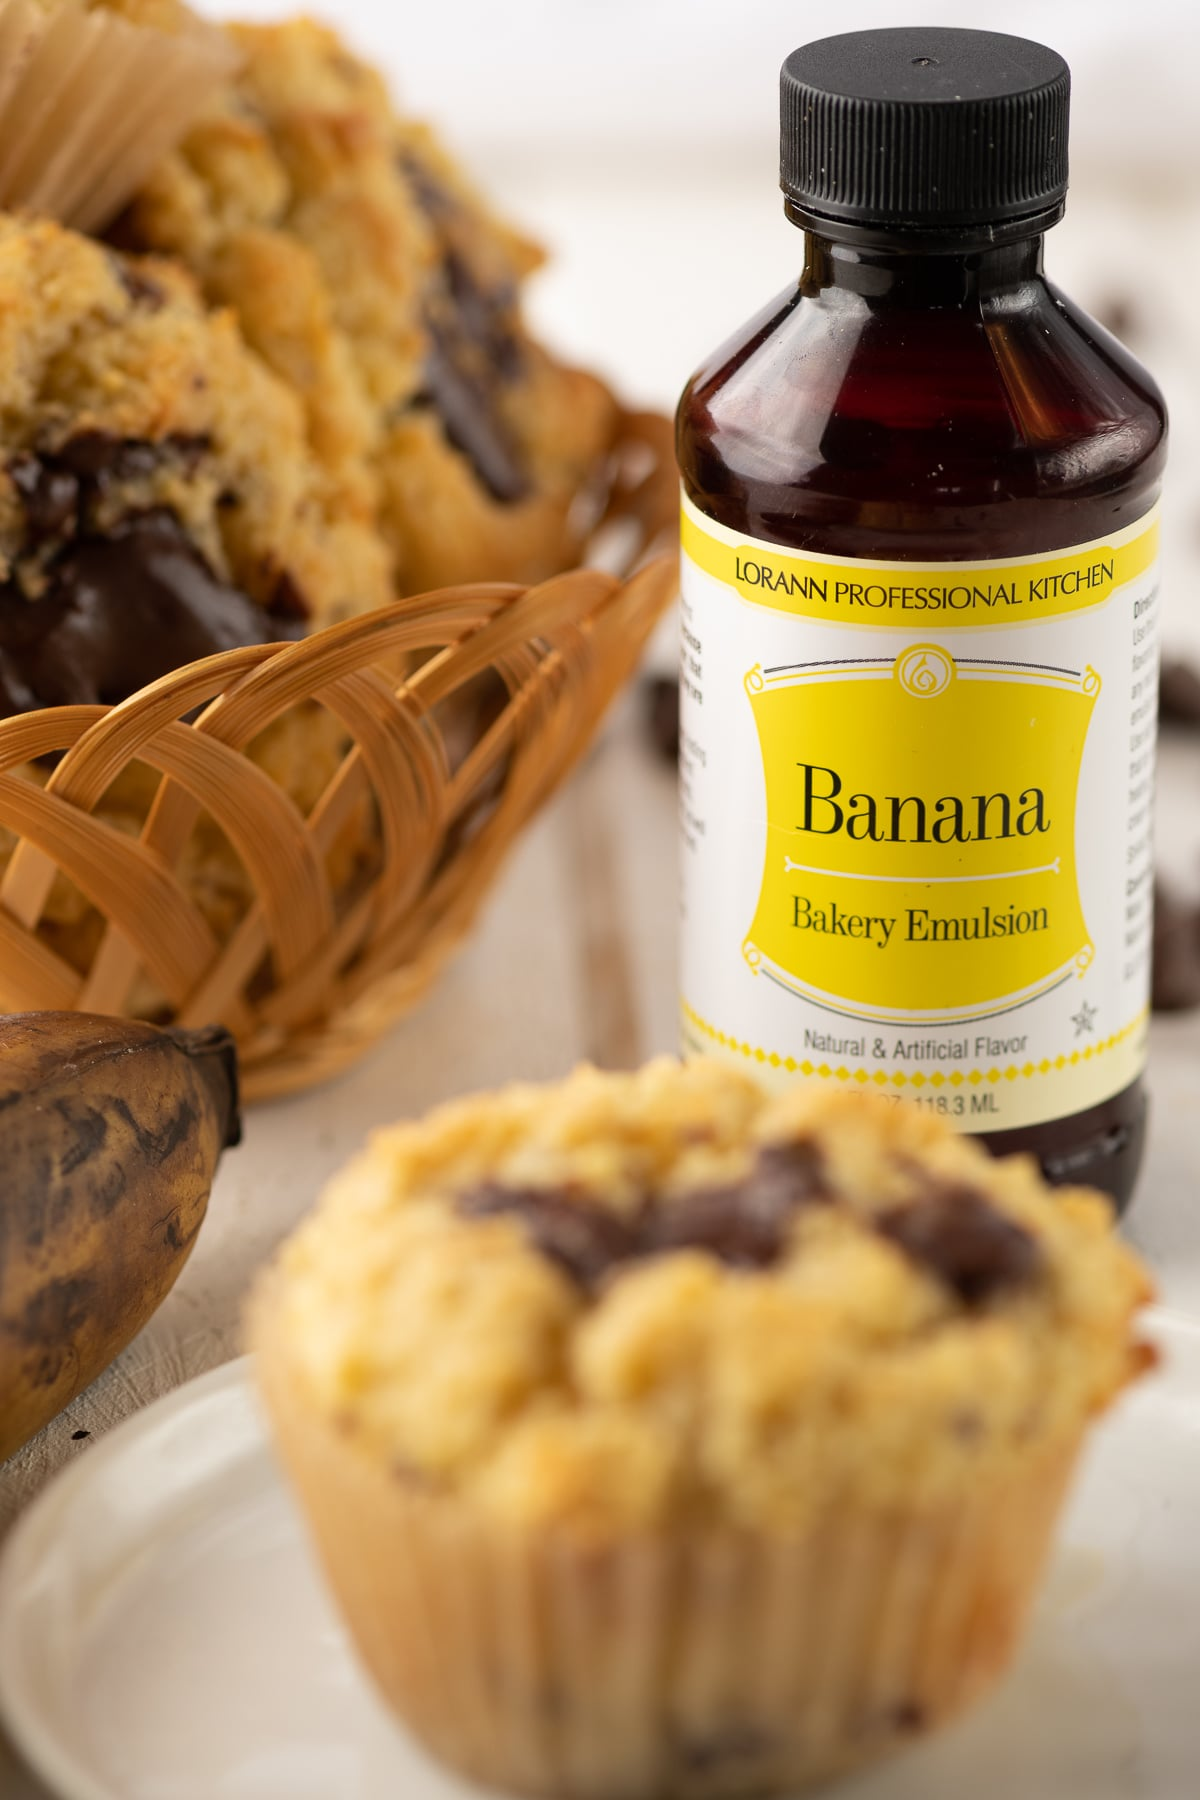 A bottle of banana bakery emulsion with a blurred muffin in the foreground.